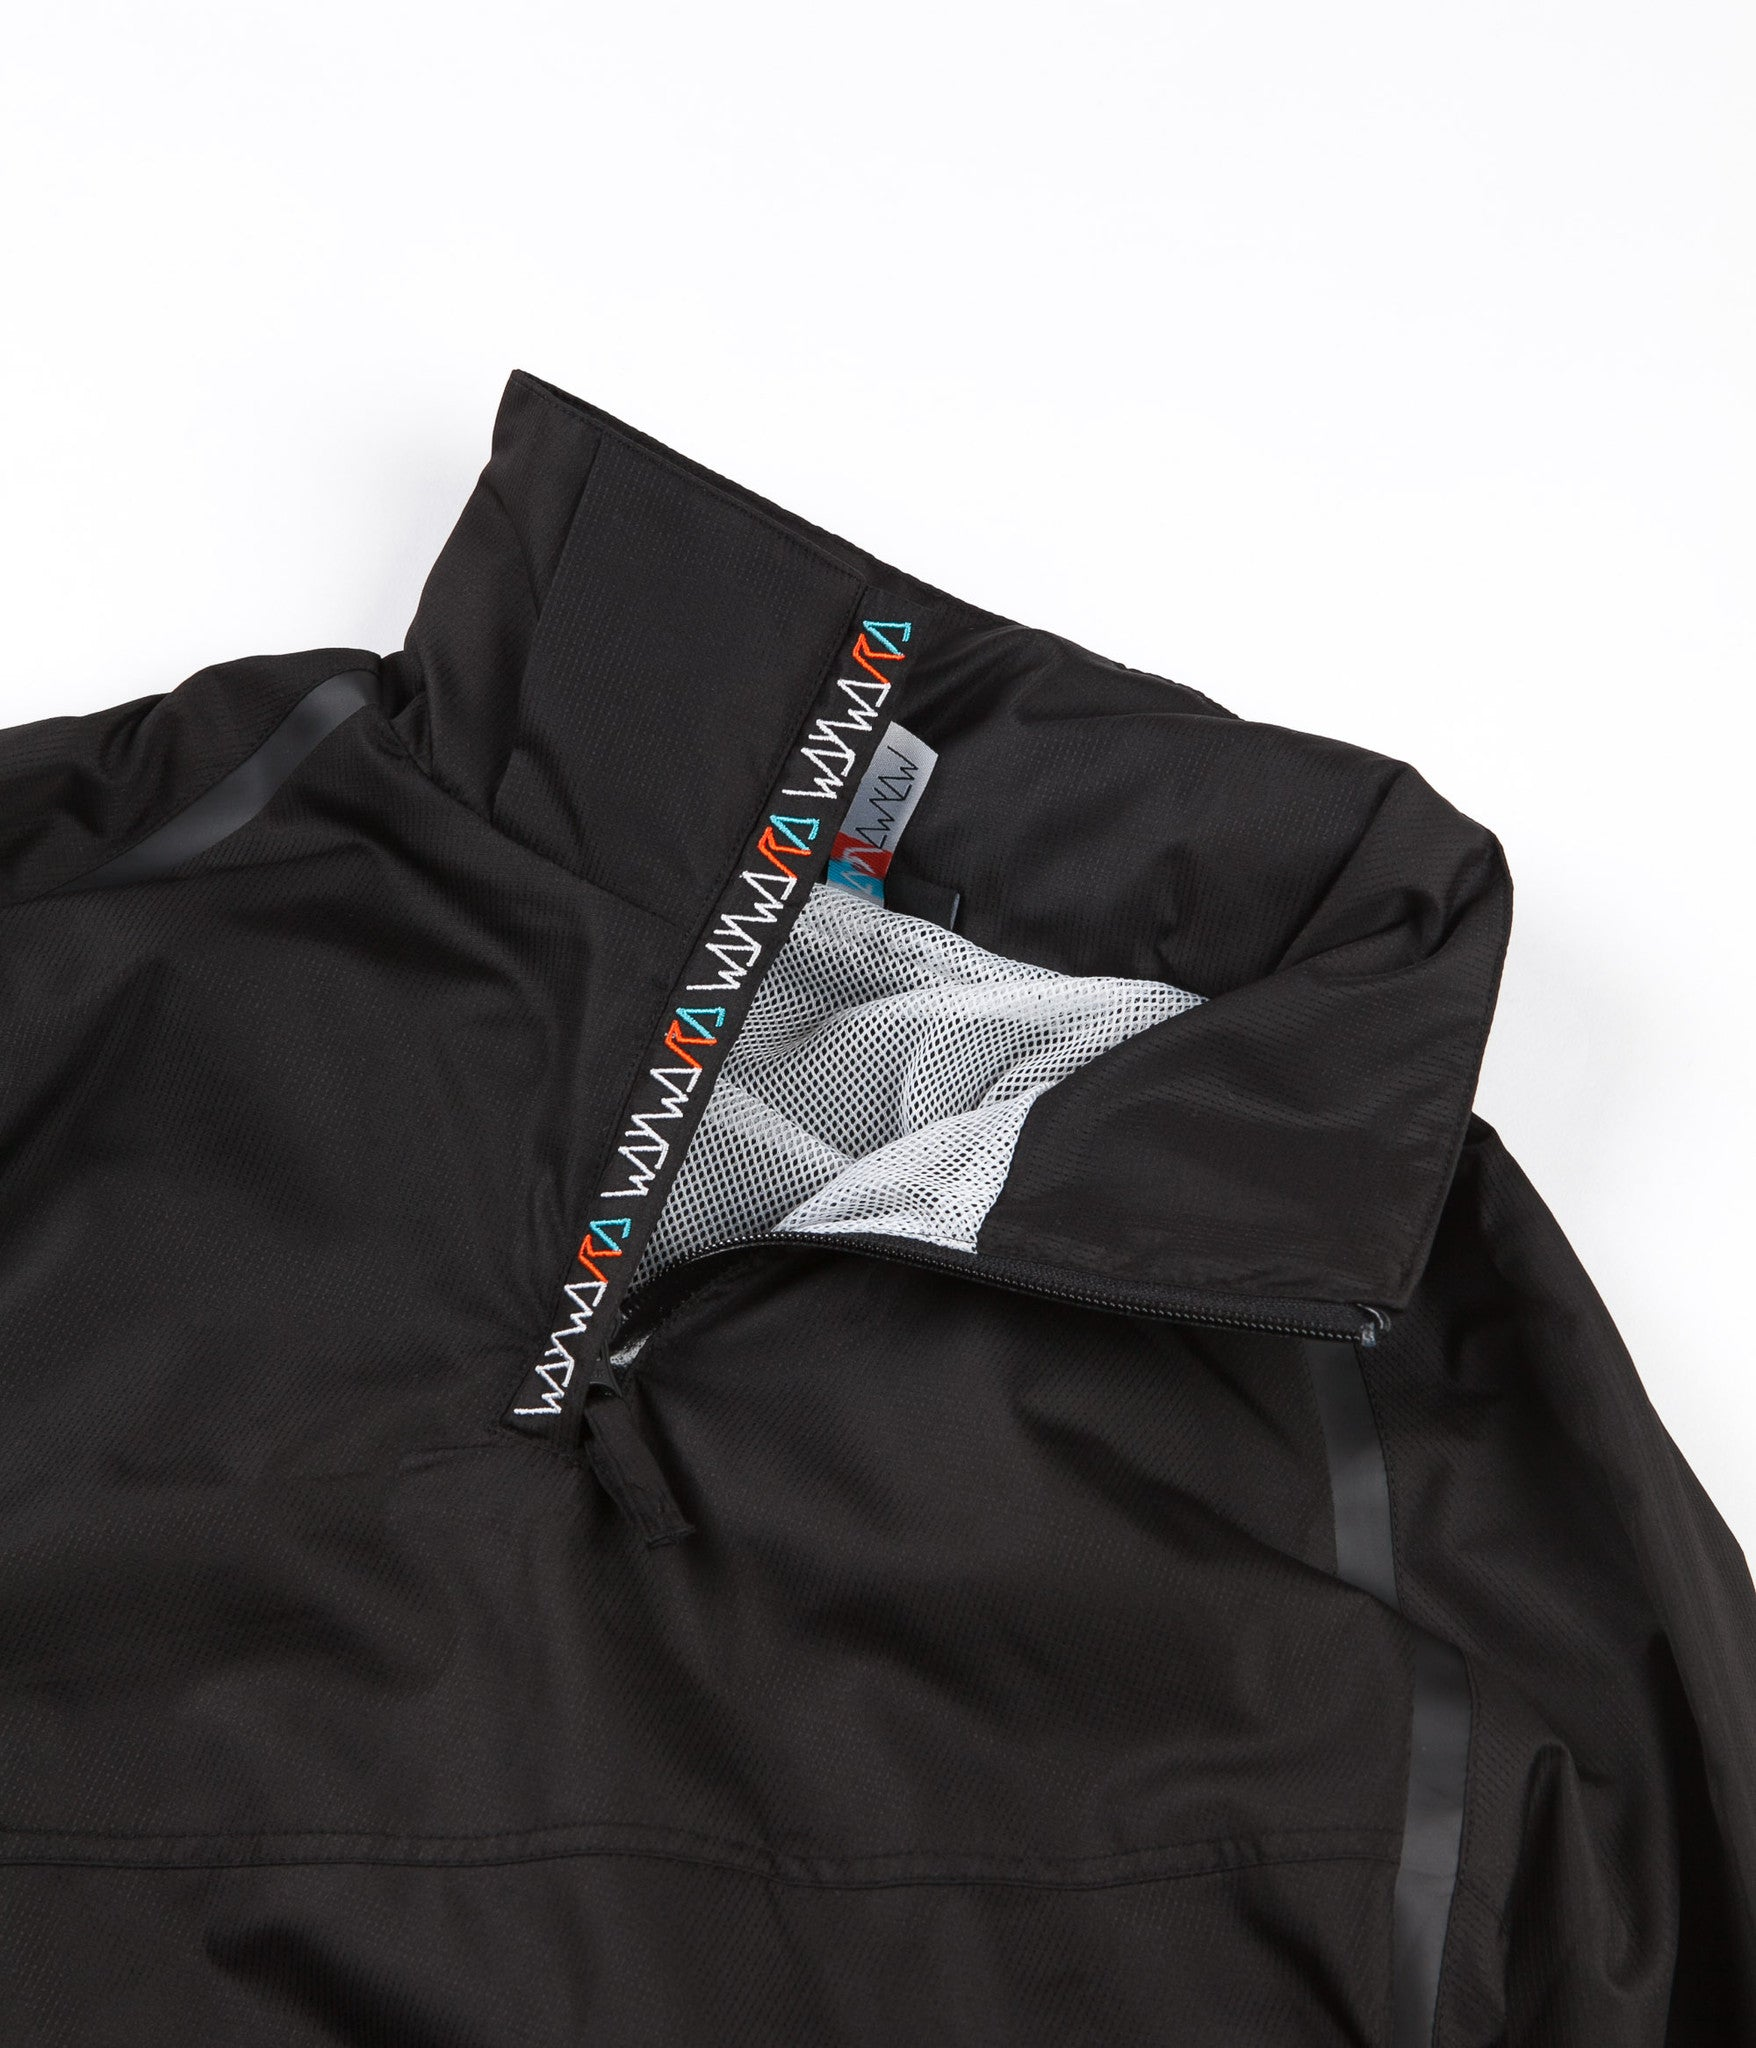 Wayward Radial Windbreaker Jacket - Black